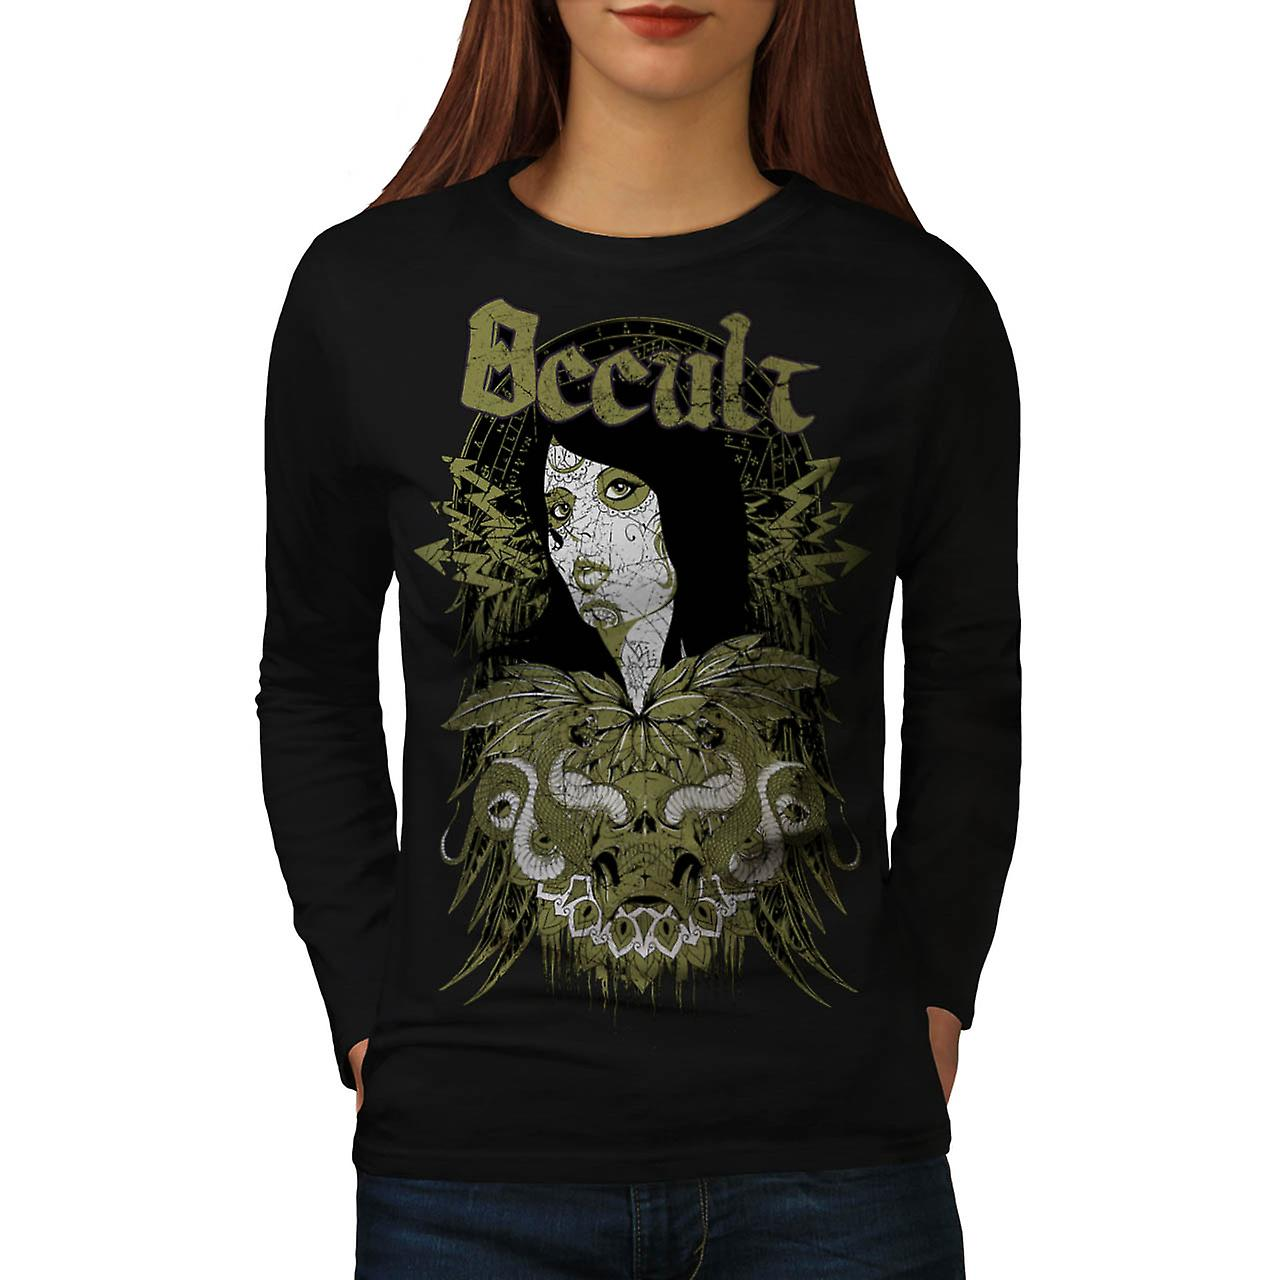 Occult Cult Lady Girl Pout Model Women Black Long Sleeve T-shirt | Wellcoda